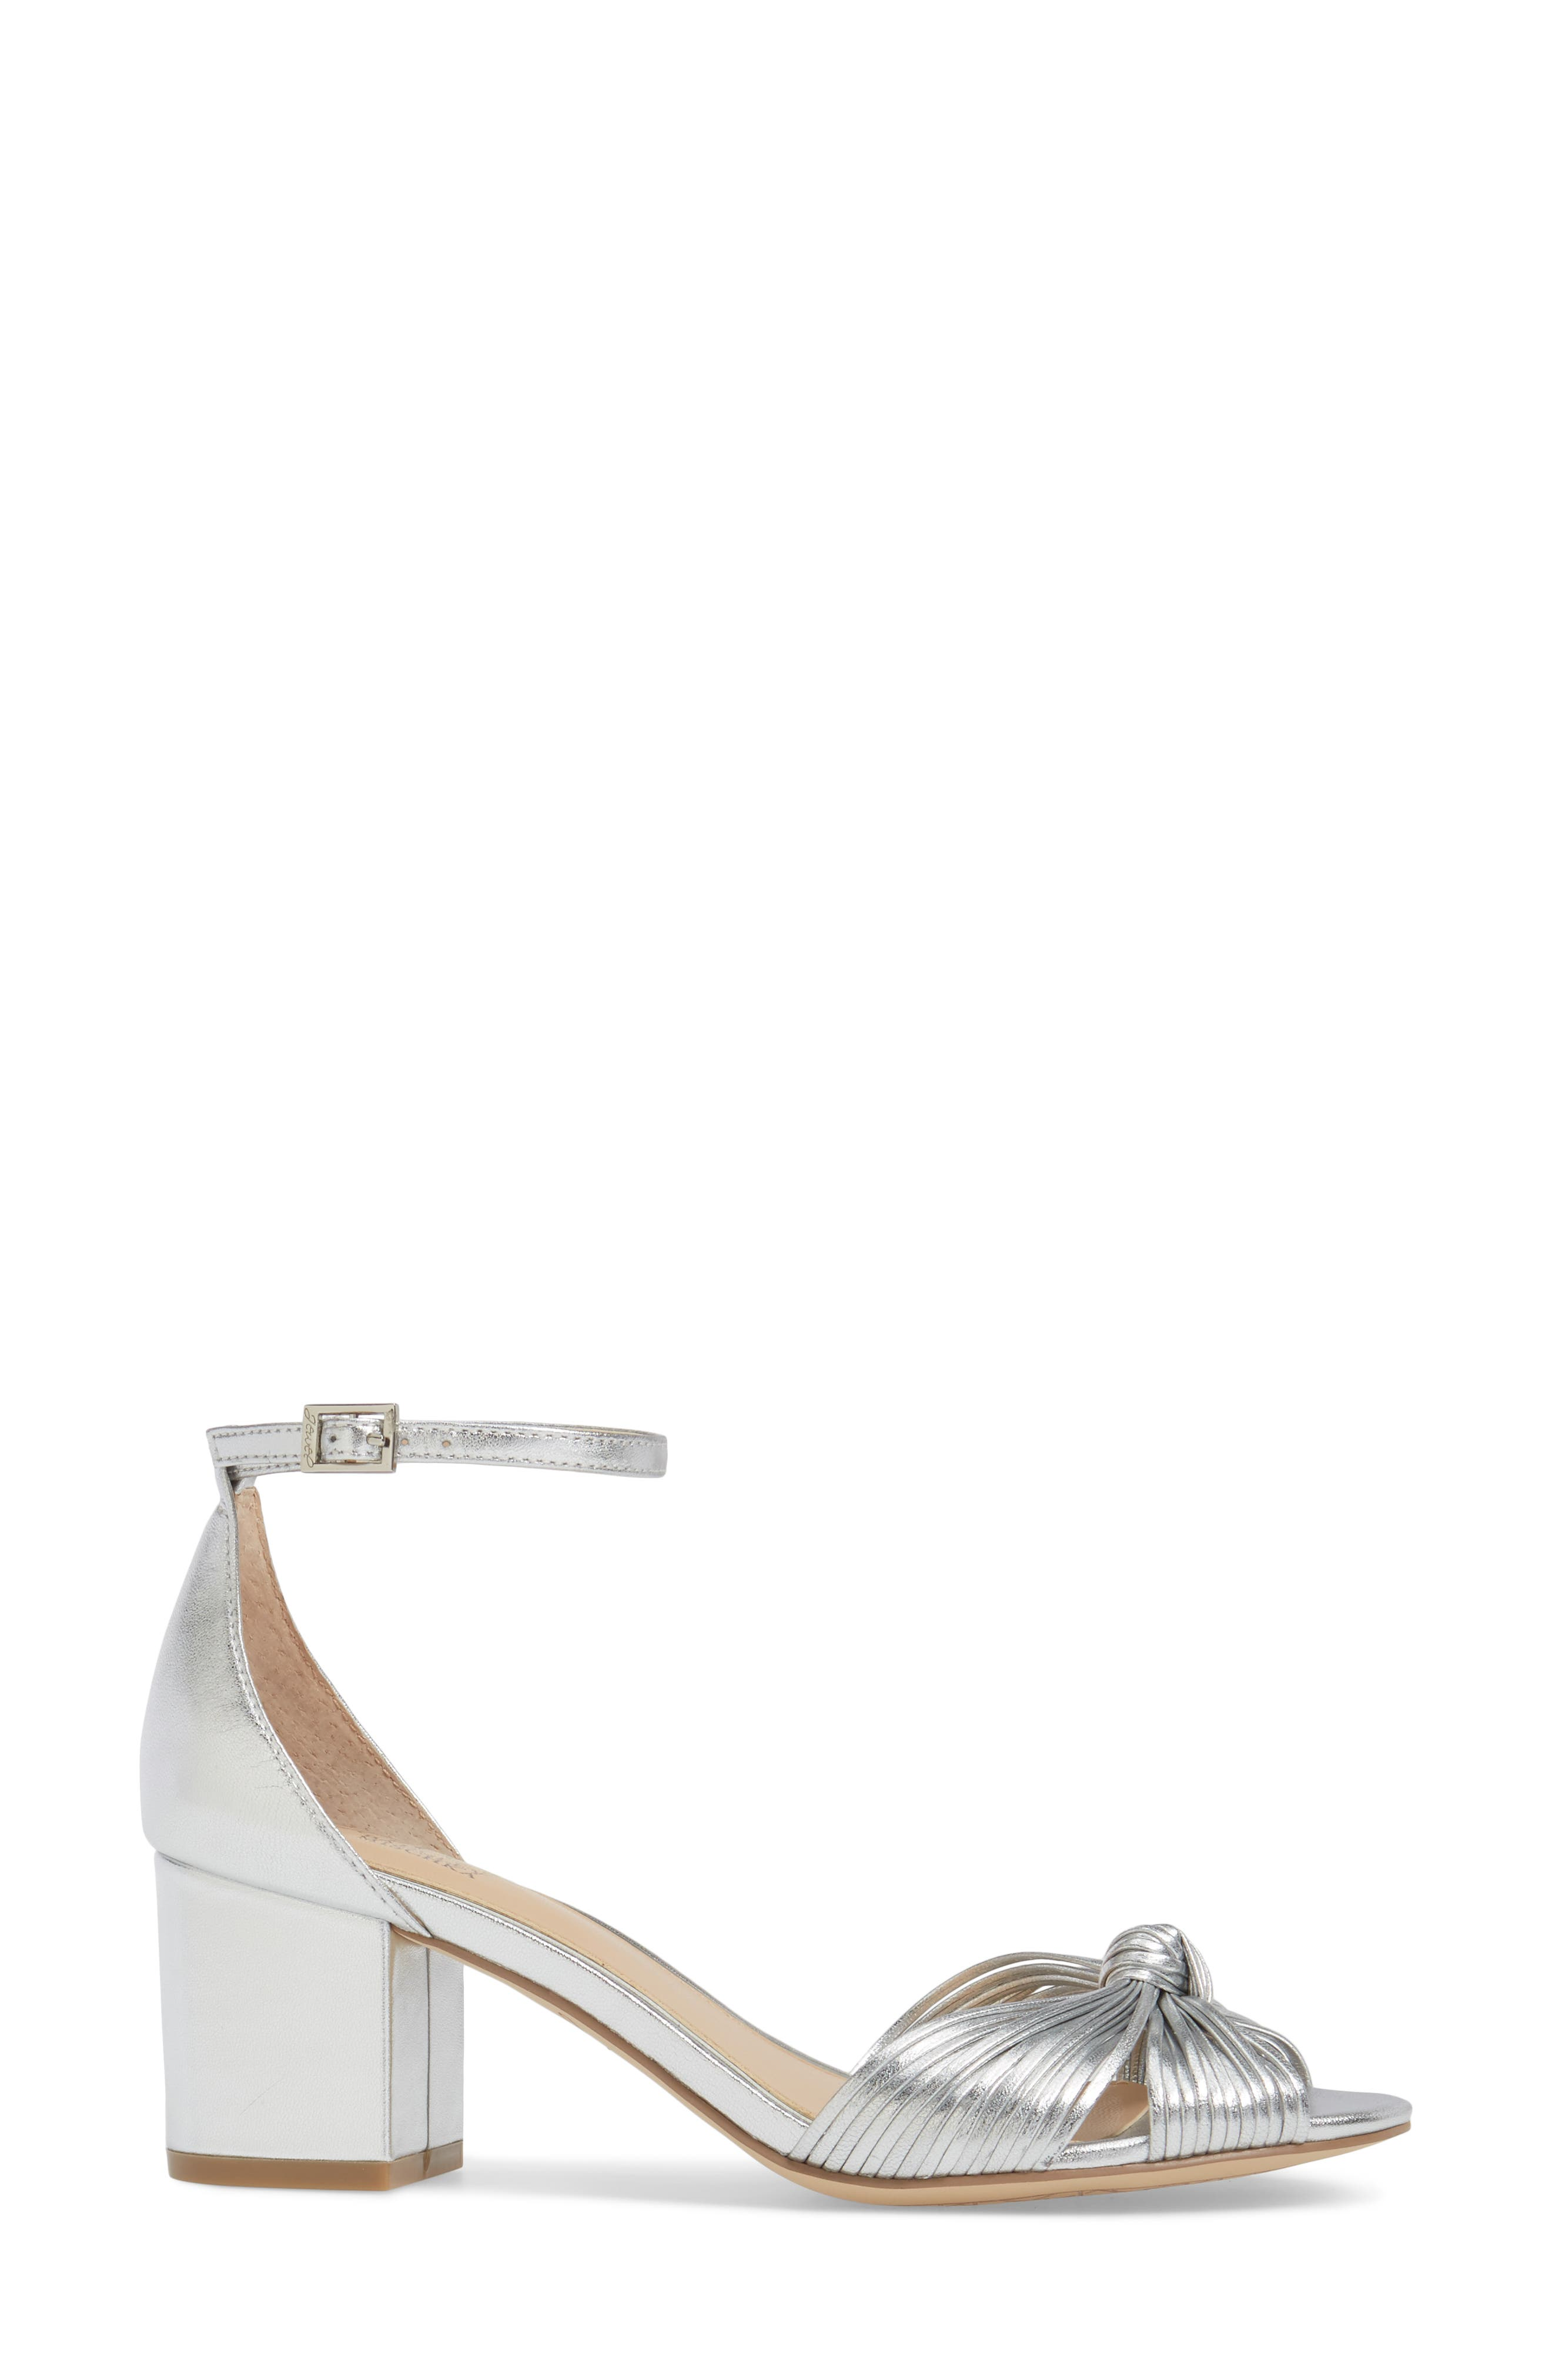 Alternate Image 3  - Jewel Badgley Mischka Lacey Ankle Strap Pump (Women)